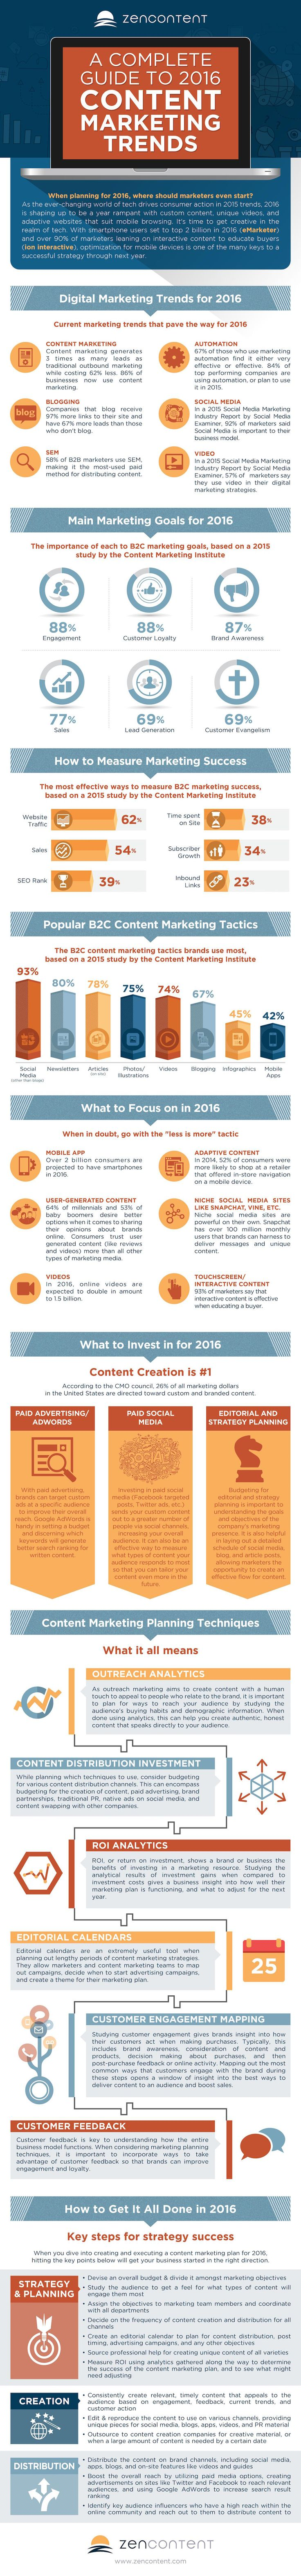 #Infographic: 2016's Biggest Content Marketing Trends